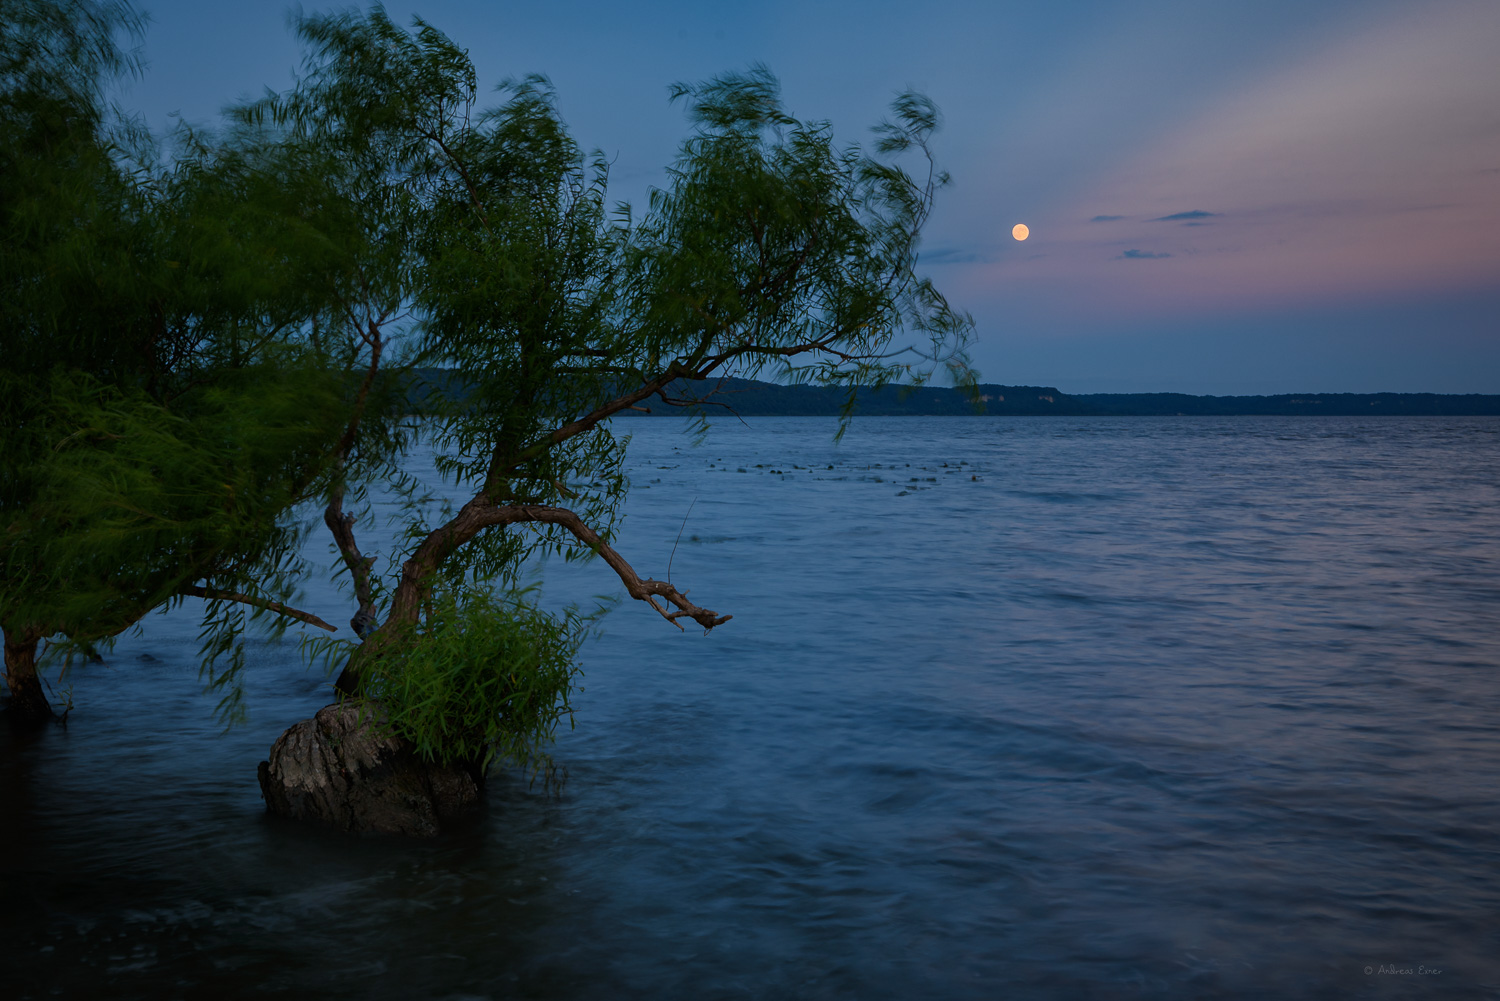 Moon over the river, Potosi, Wisconsin